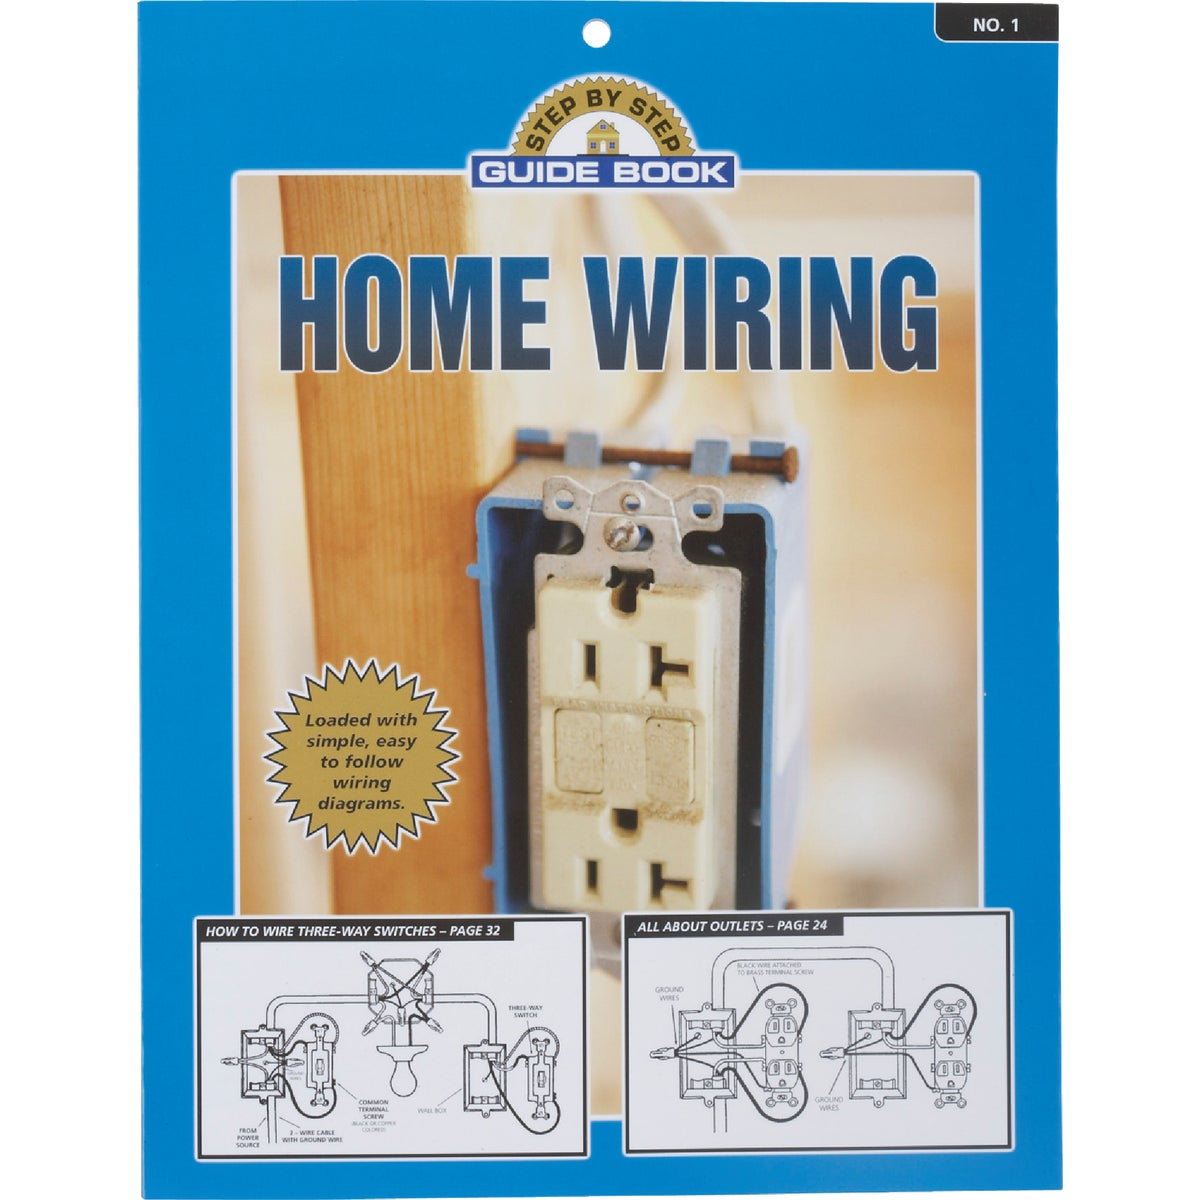 HOME WIRING BOOK - #1 by Step By Step Guide